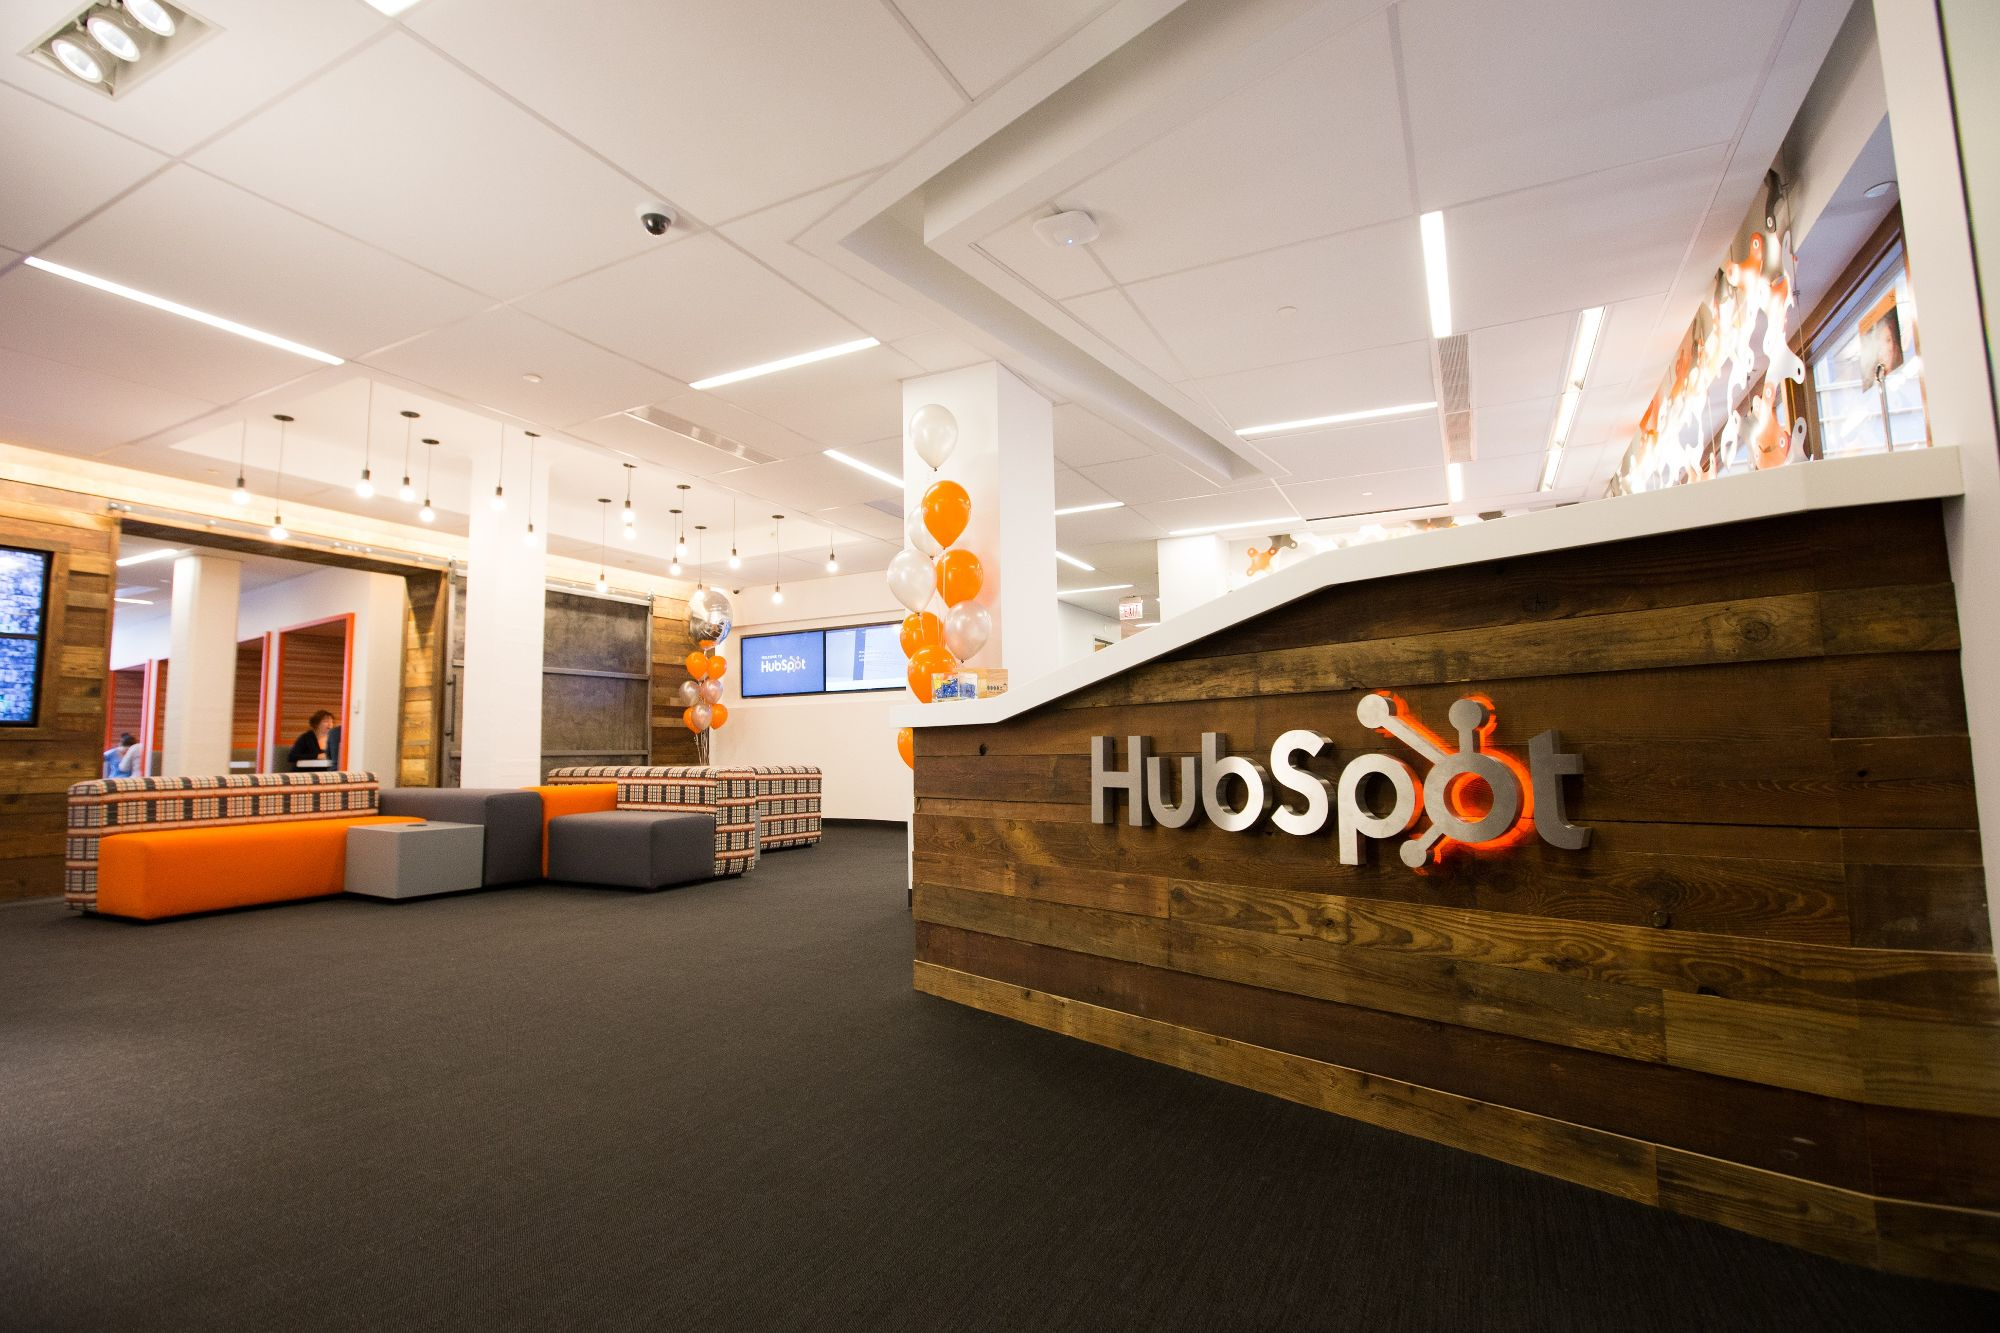 hubspot-office.jpg